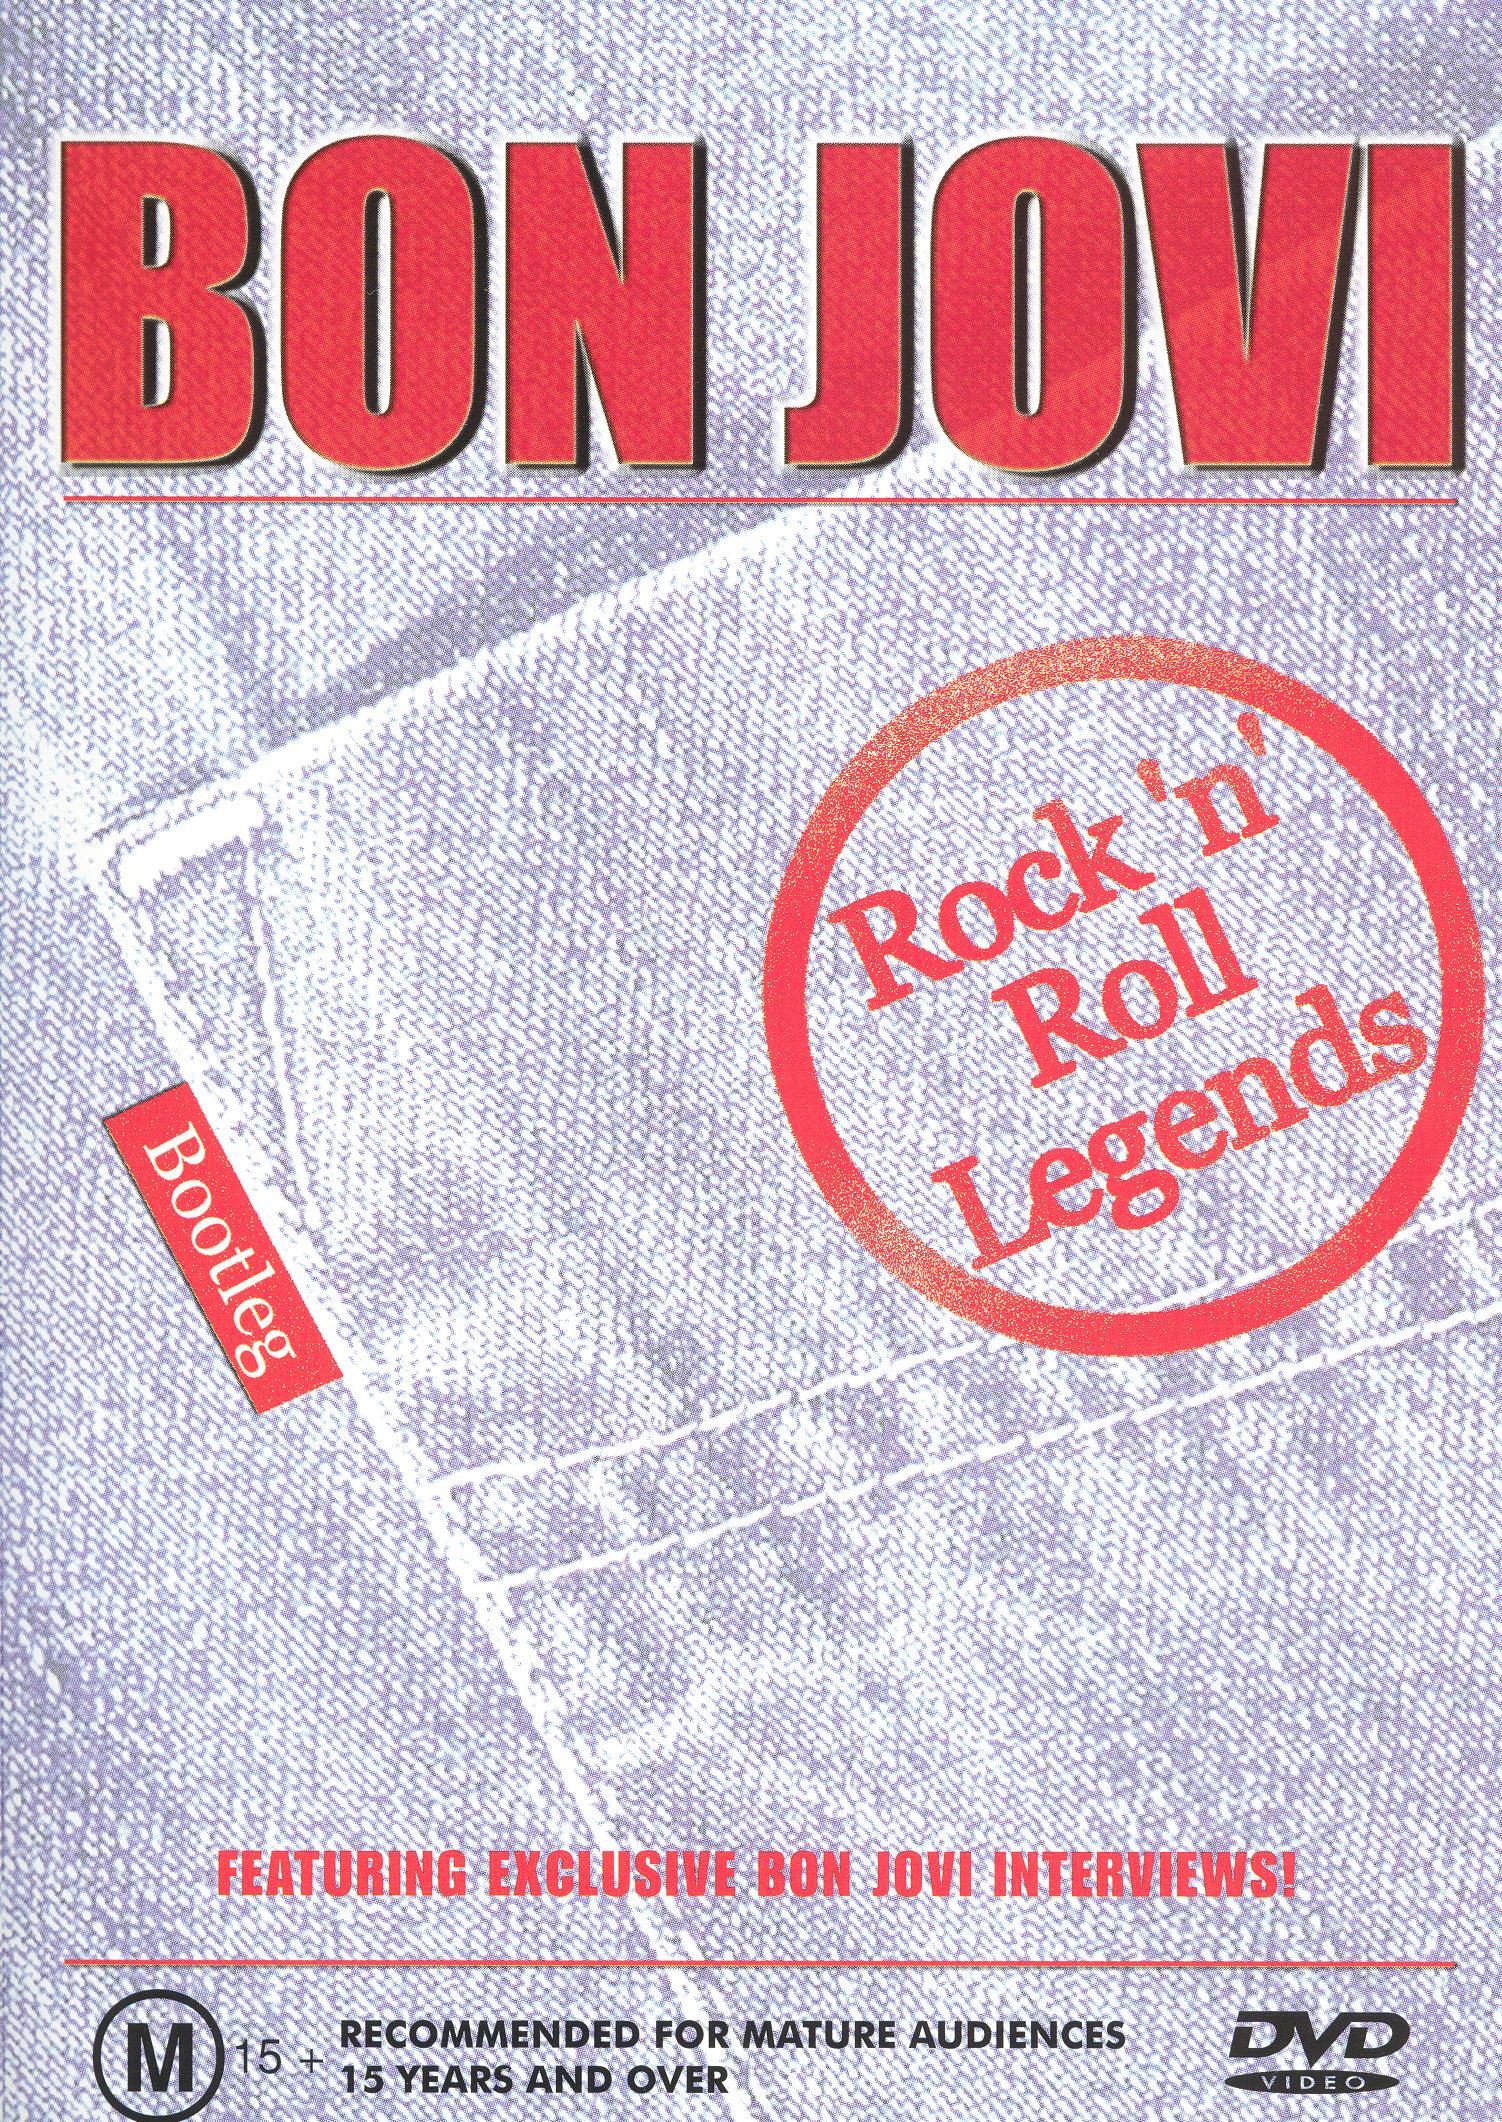 Rock 'N' Roll Legends: Bon Jovi